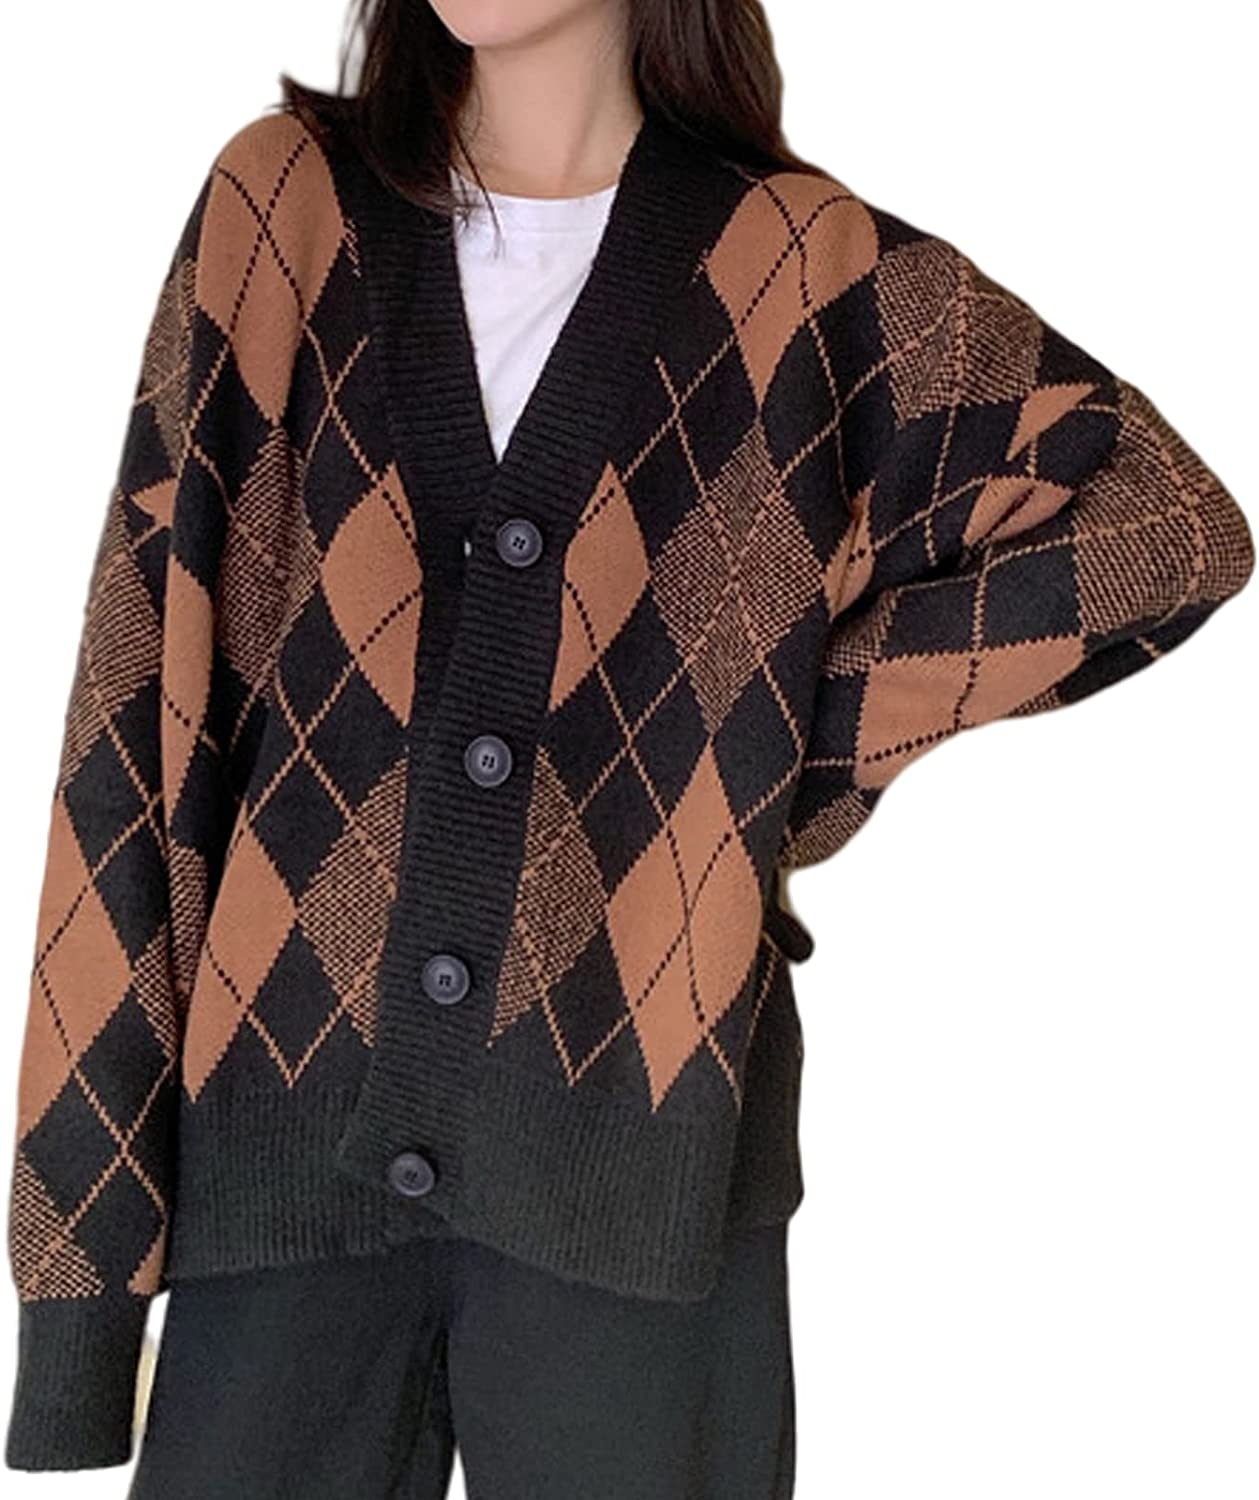 Women V-Neck Argyle 40% OFF Cheap Large-scale sale Sale Knitted Color Cardiga Button Block Oversized